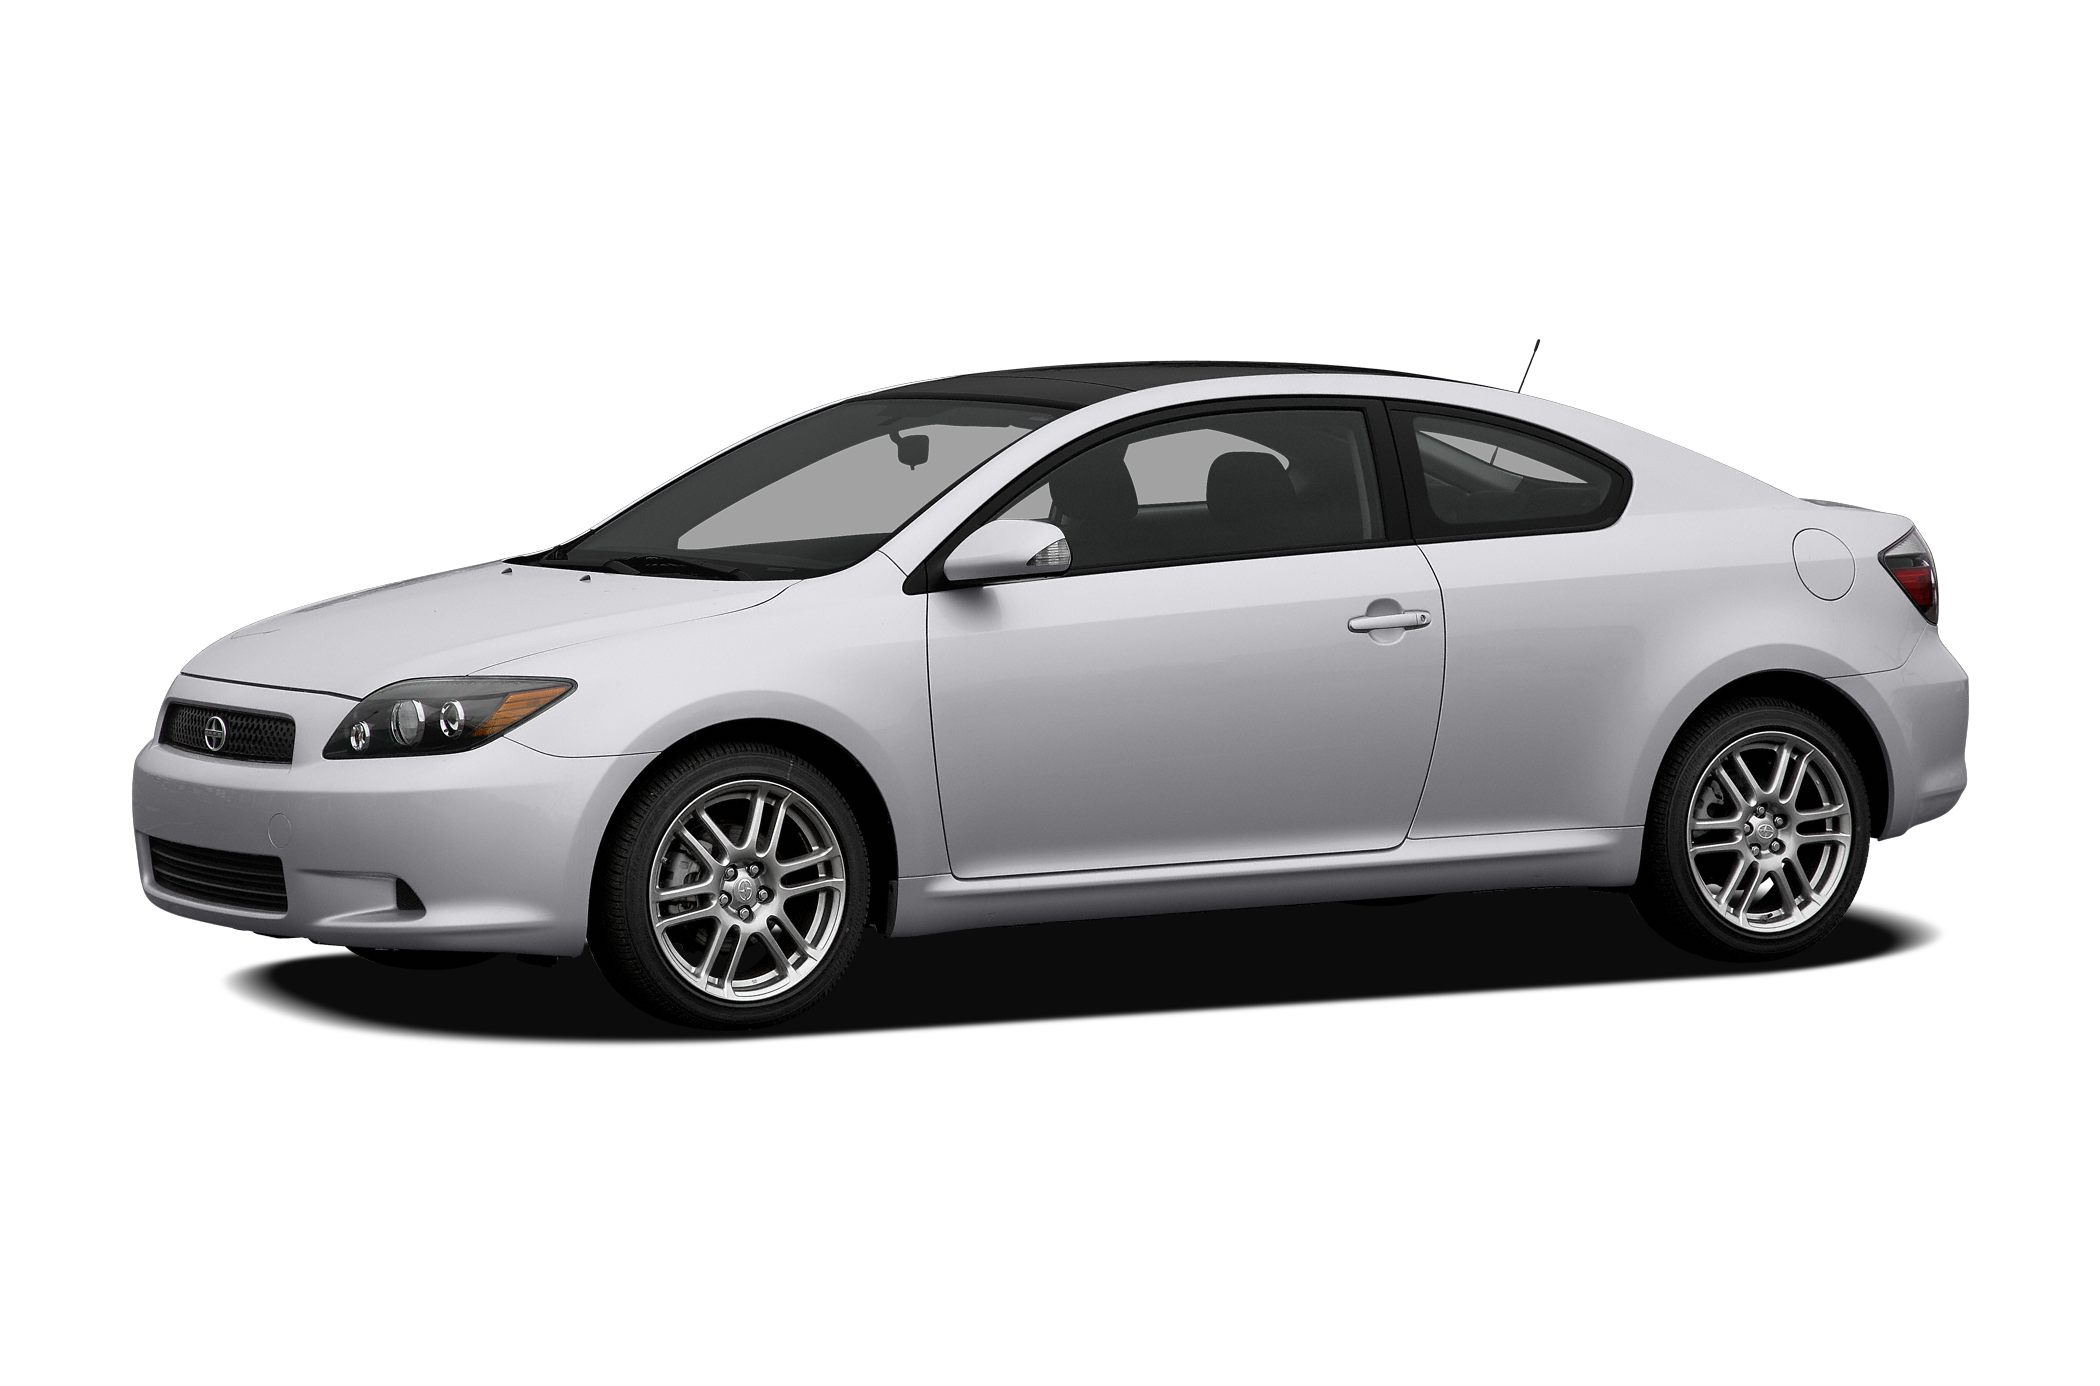 2010 Scion TC Coupe for sale in Hollywood for $10,788 with 49,876 miles.